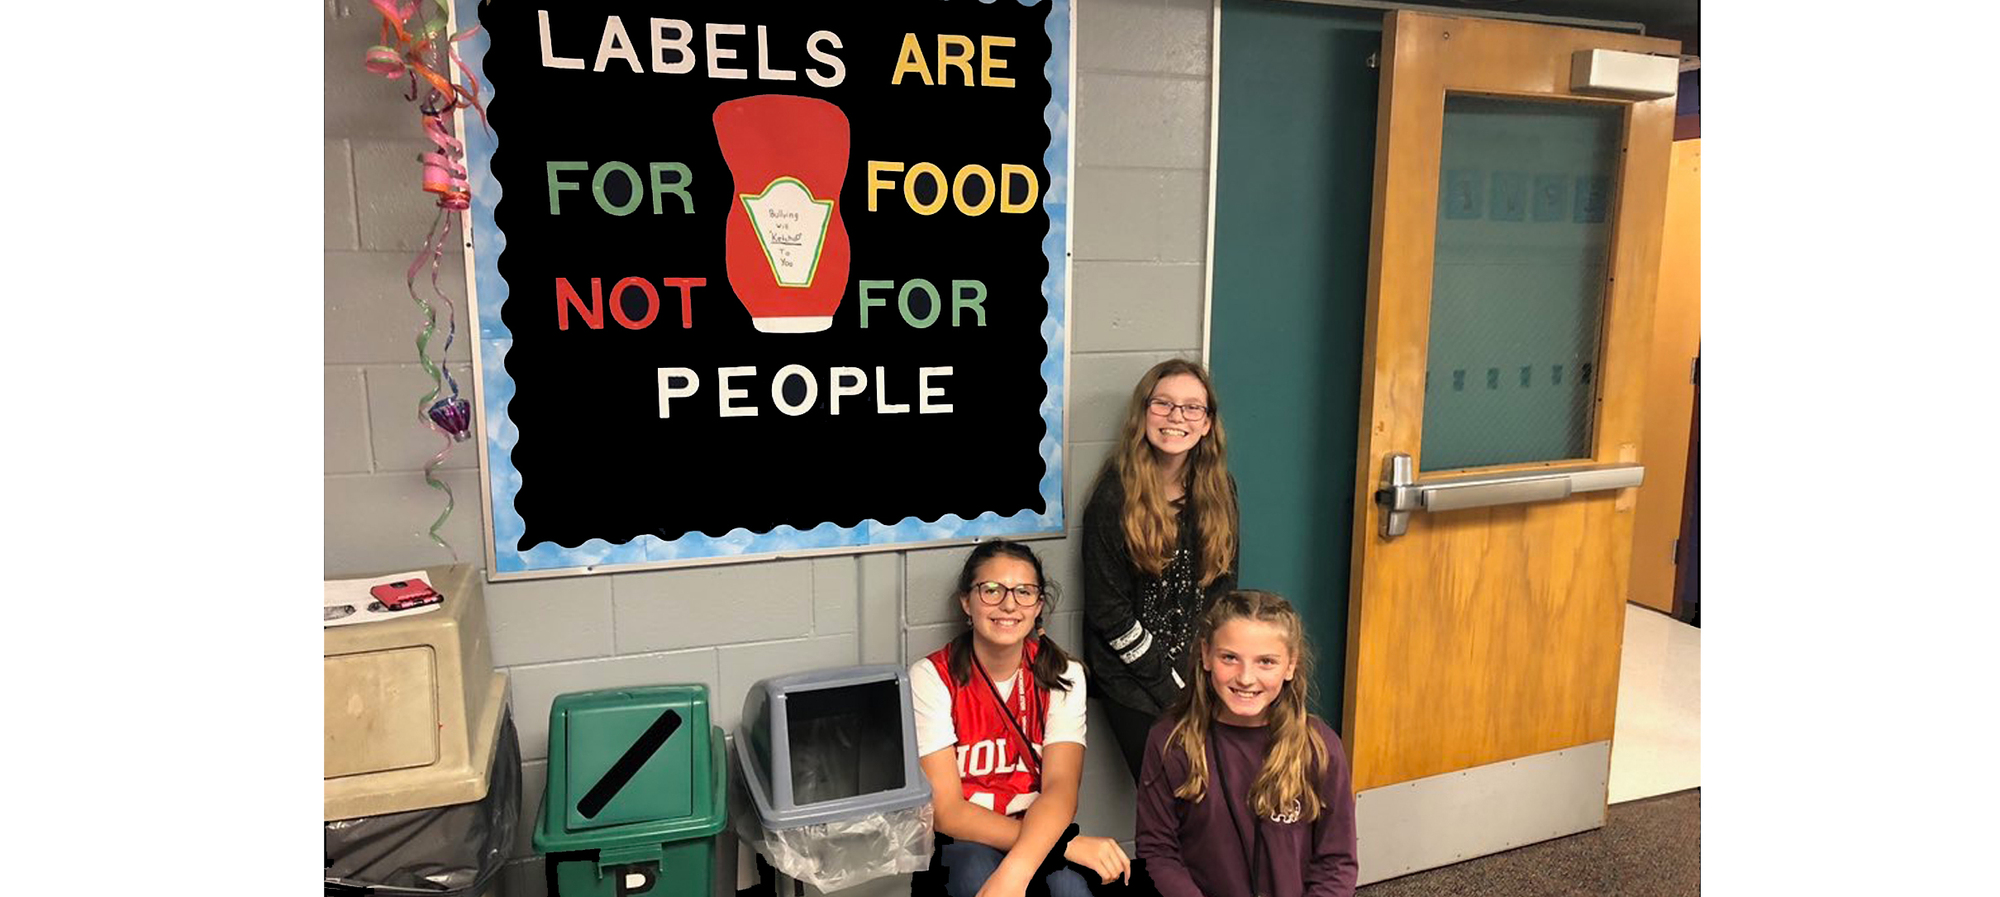 Sign saying Labels are for food, not people and three girls sitting near it